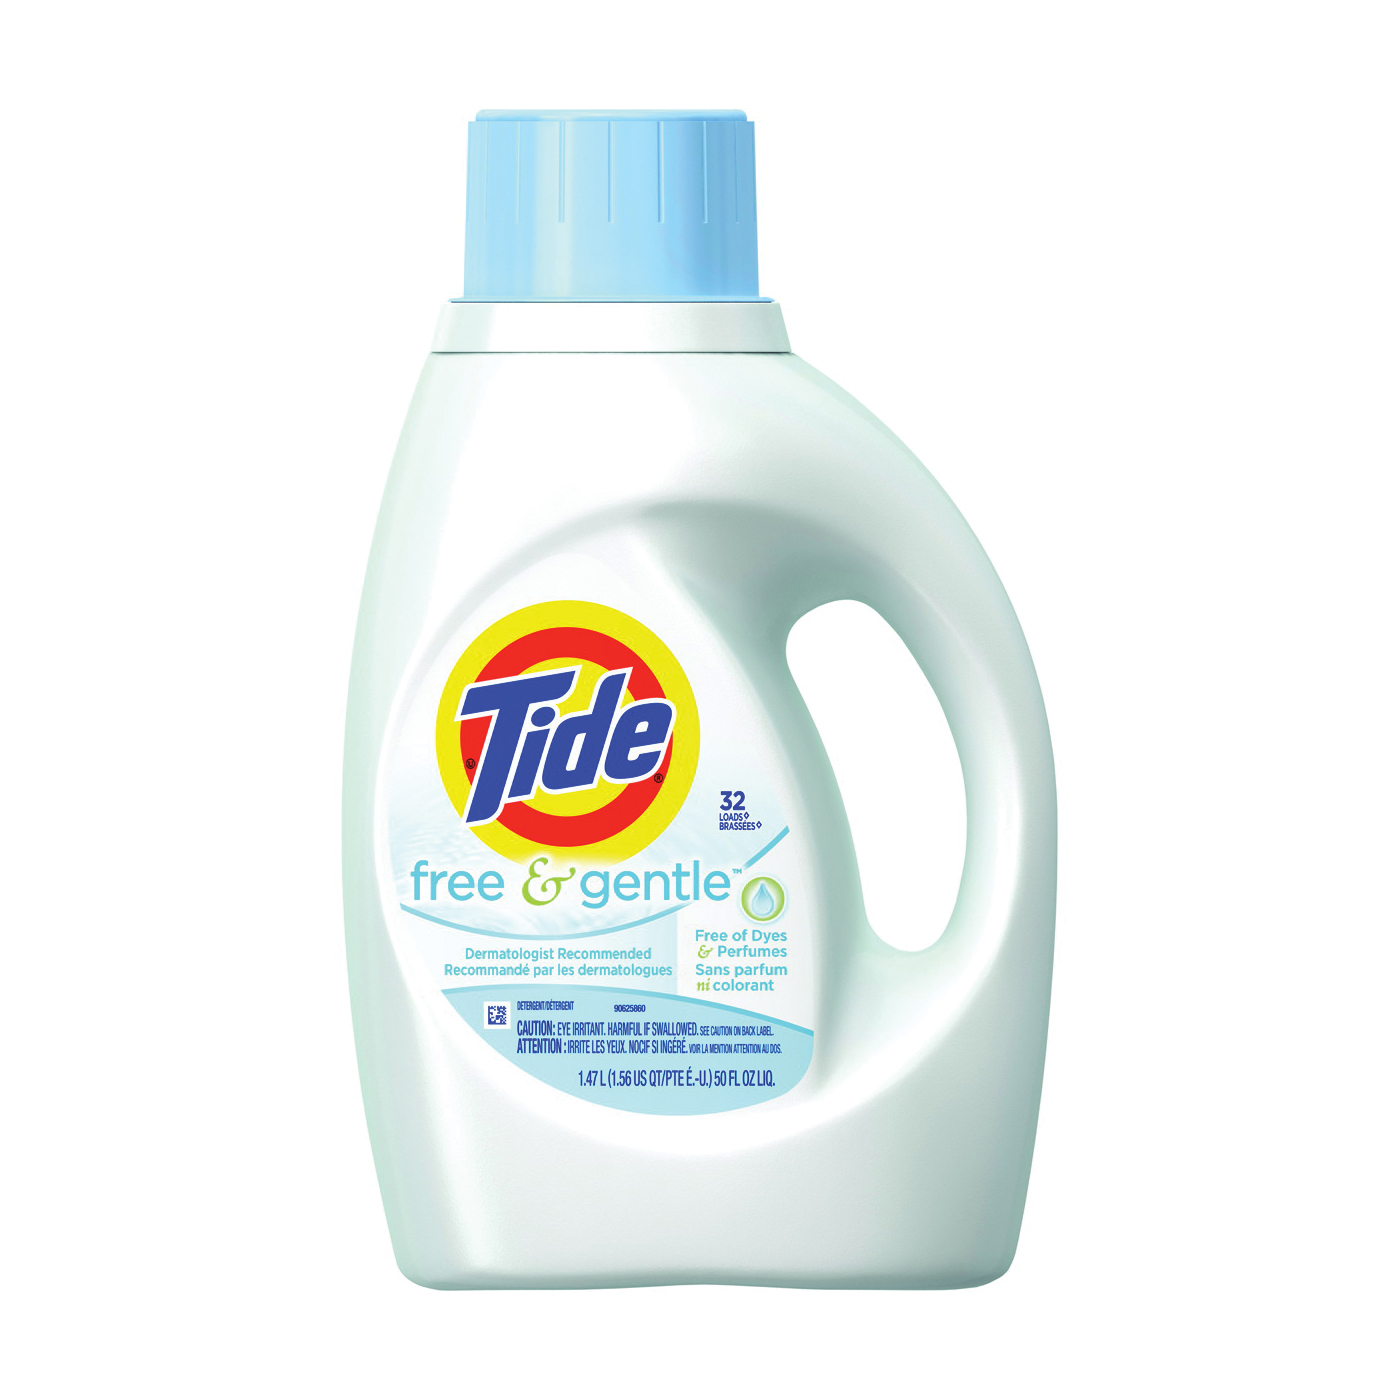 Picture of Tide 5885637 Laundry Detergent, 50 oz, Bottle, Liquid, Slight